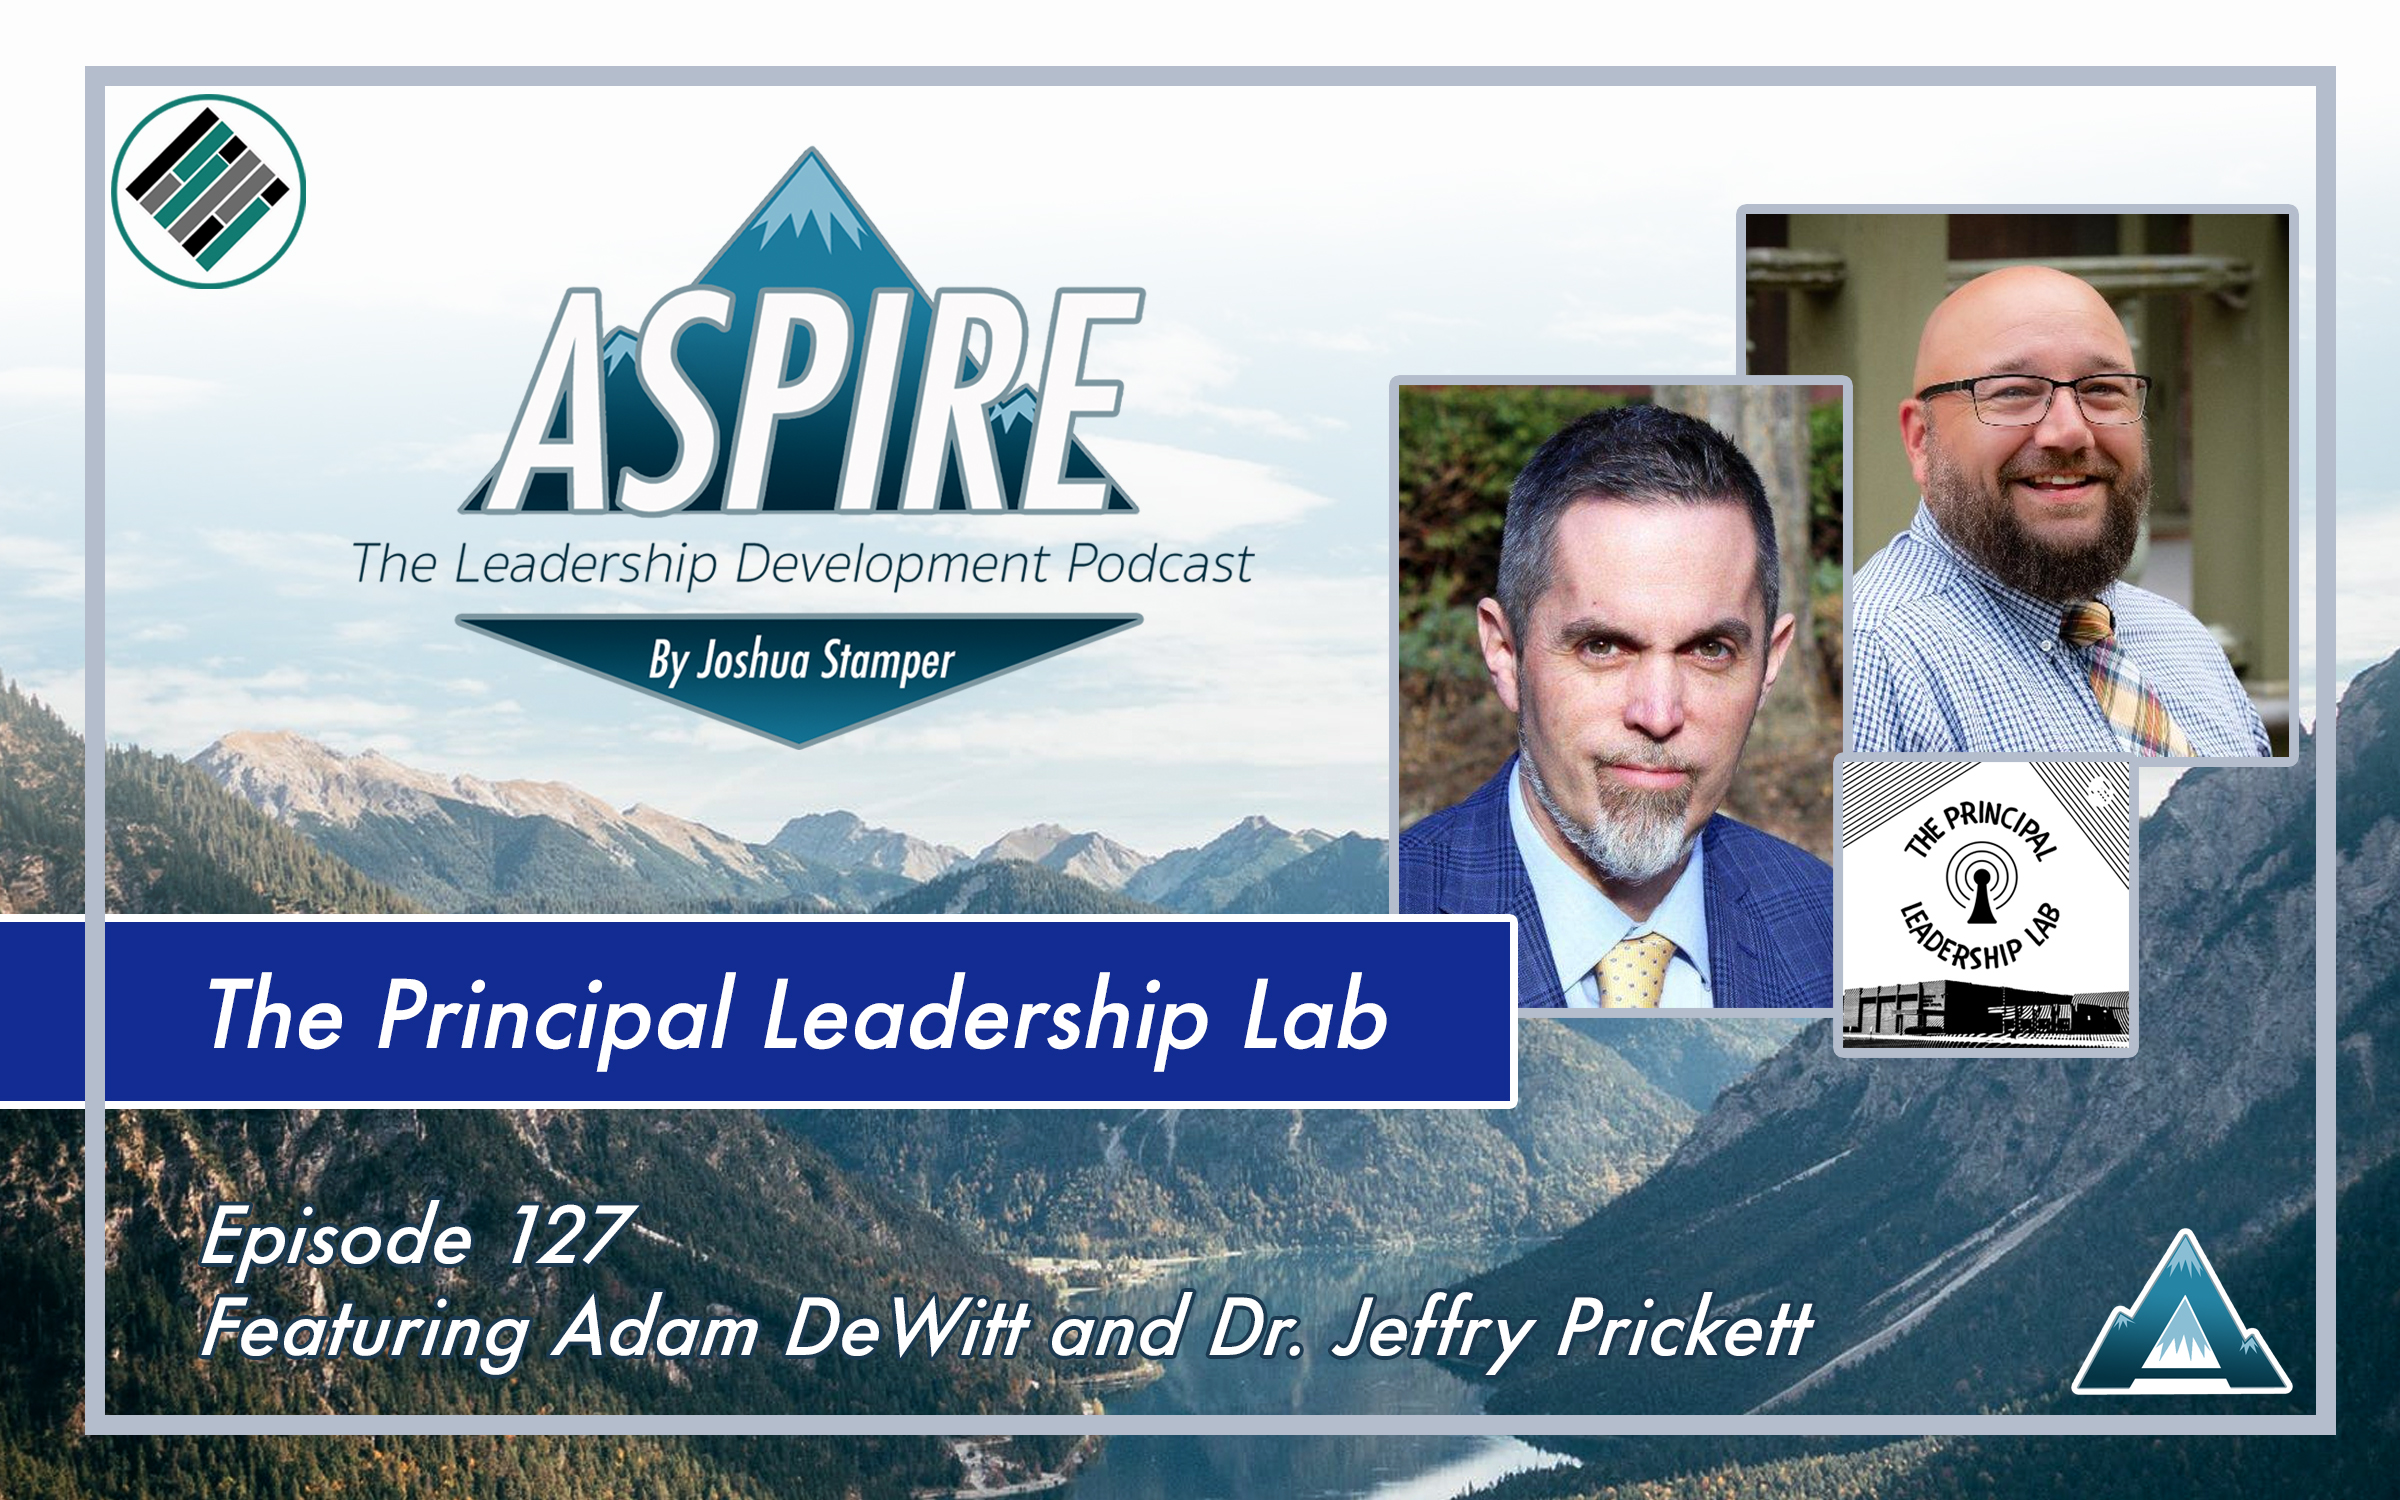 Joshua Stamper, Aspire: The Leadership Development Podcast, Adam DeWitt, Jeffrey Prickett, The Principal Leadership Lab